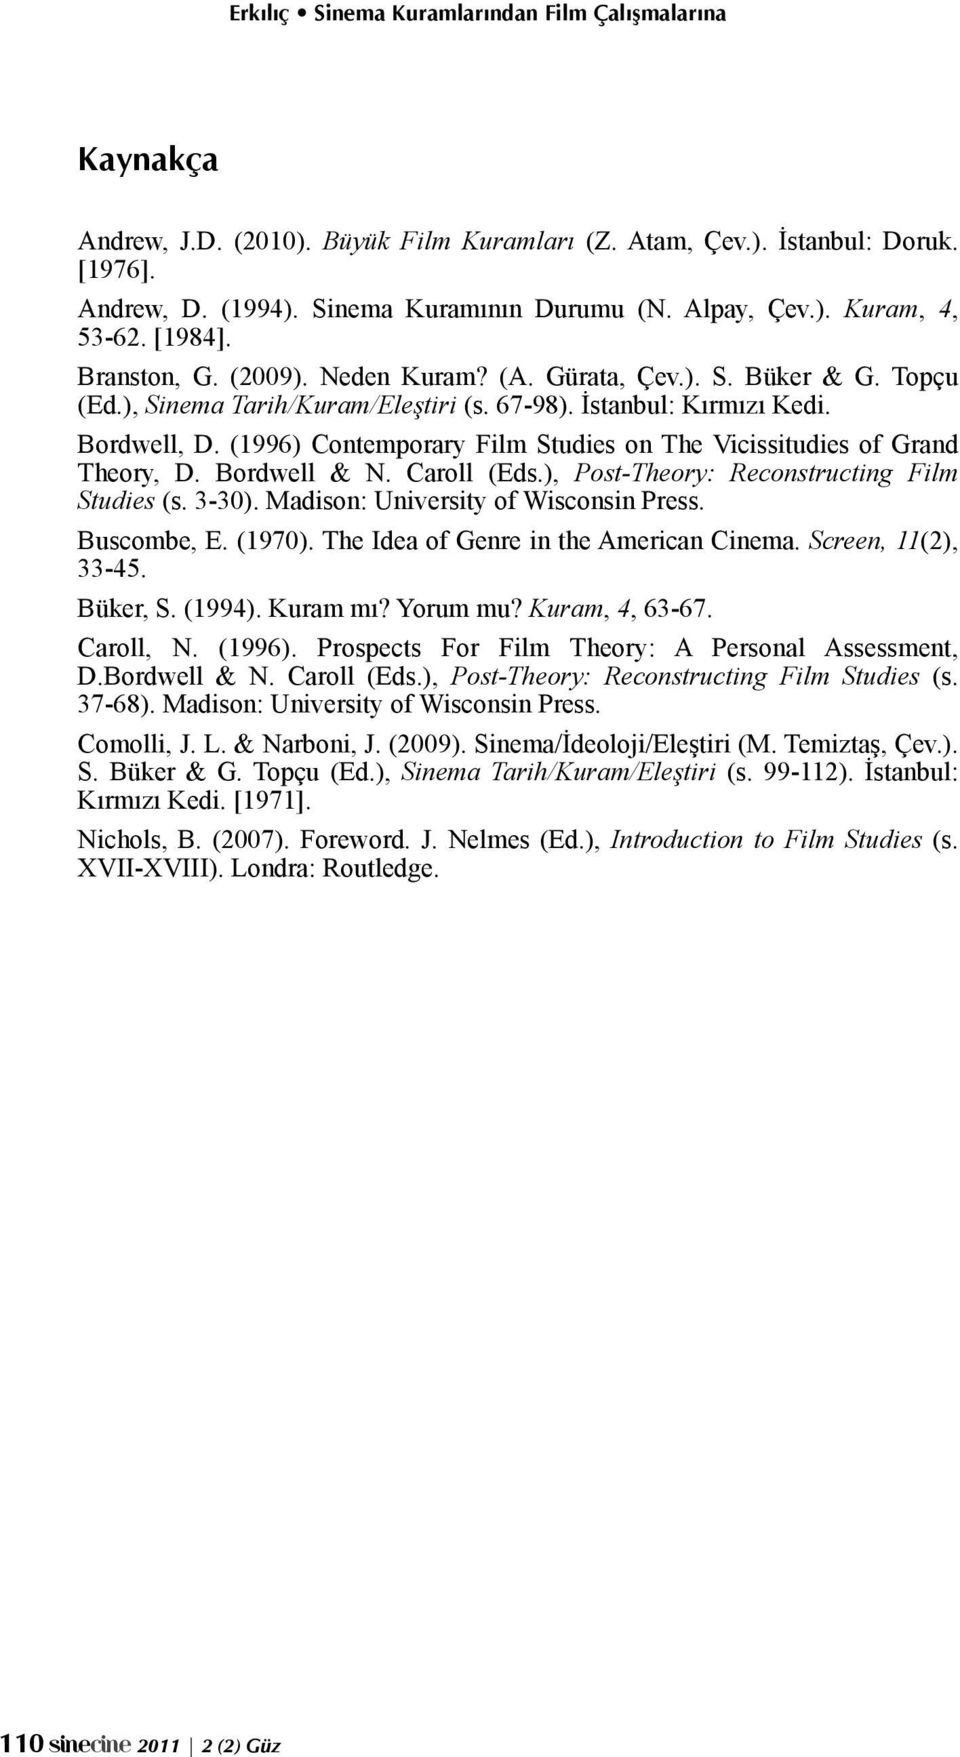 (1996) Contemporary Film Studies on The Vicissitudies of Grand Theory, D. Bordwell & N. Caroll (Eds.), Post-Theory: Reconstructing Film Studies (s. 3-30). Madison: University of Wisconsin Press.